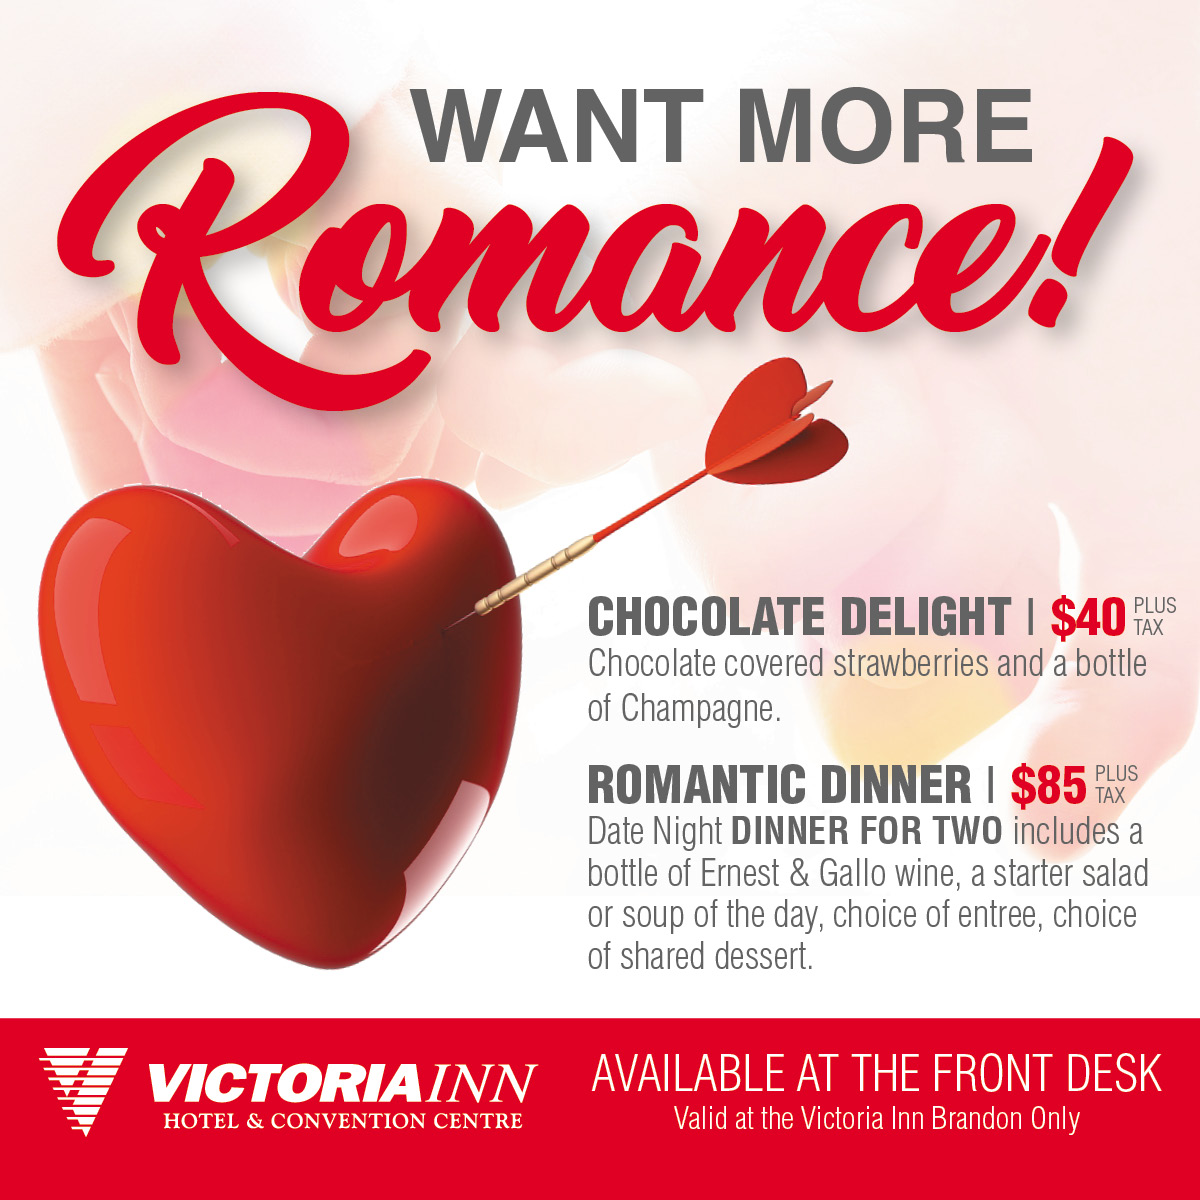 Let us help you keep the romance alive! https://t.co/6YXtfy4PTn